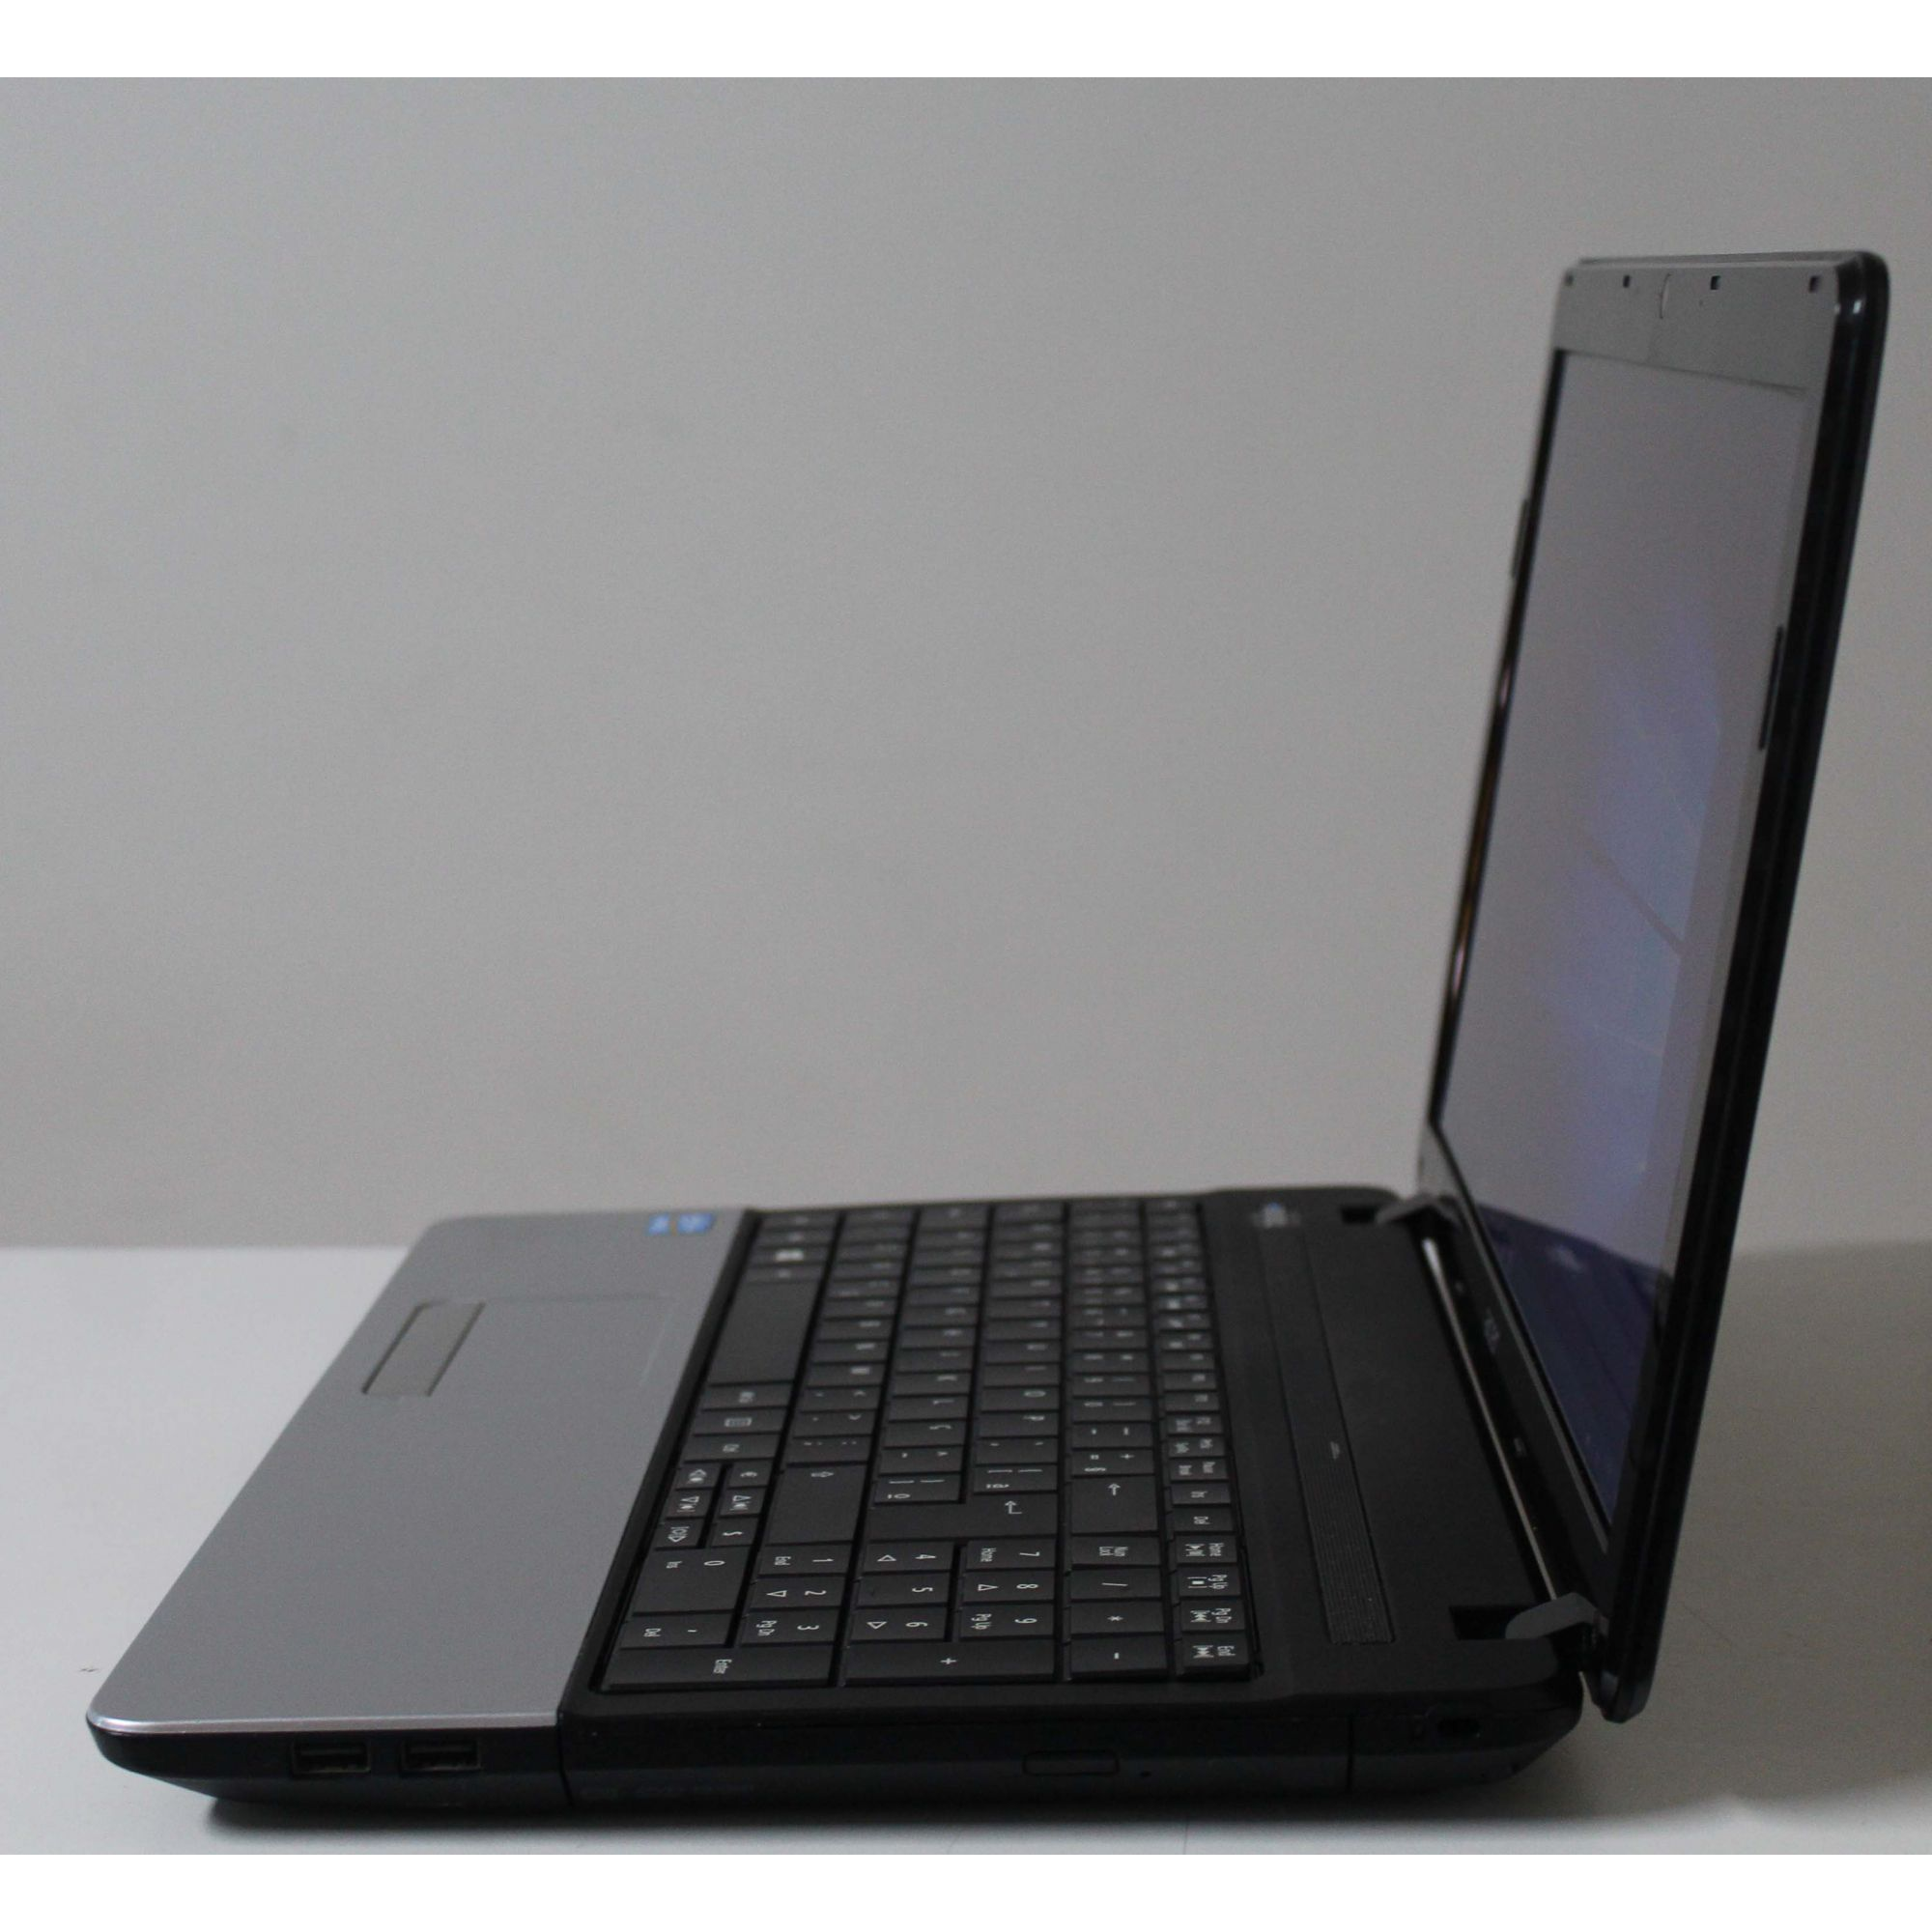 Notebook Acer Aspire E1-571 Intel Core i5 2.60GHz 4GB HD-500GB + Alphanumérico